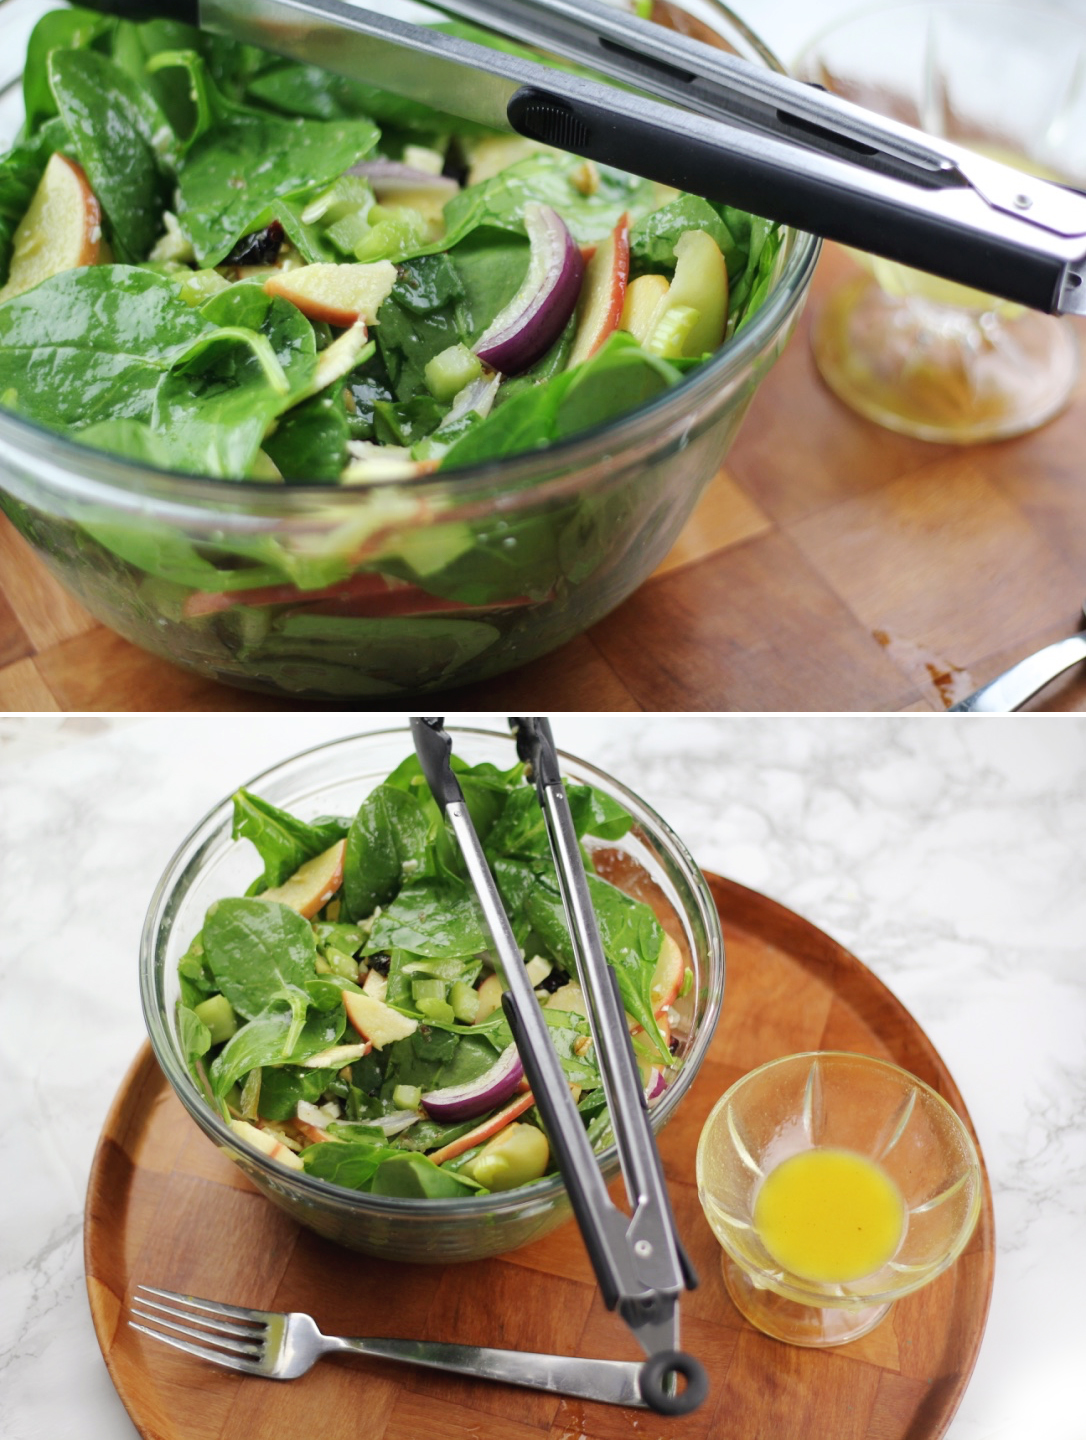 LOW CARB high fibre and protein spinach apple celery feta cheese salad. Nutrition info included. Super quick and easy for dinner or lunch.